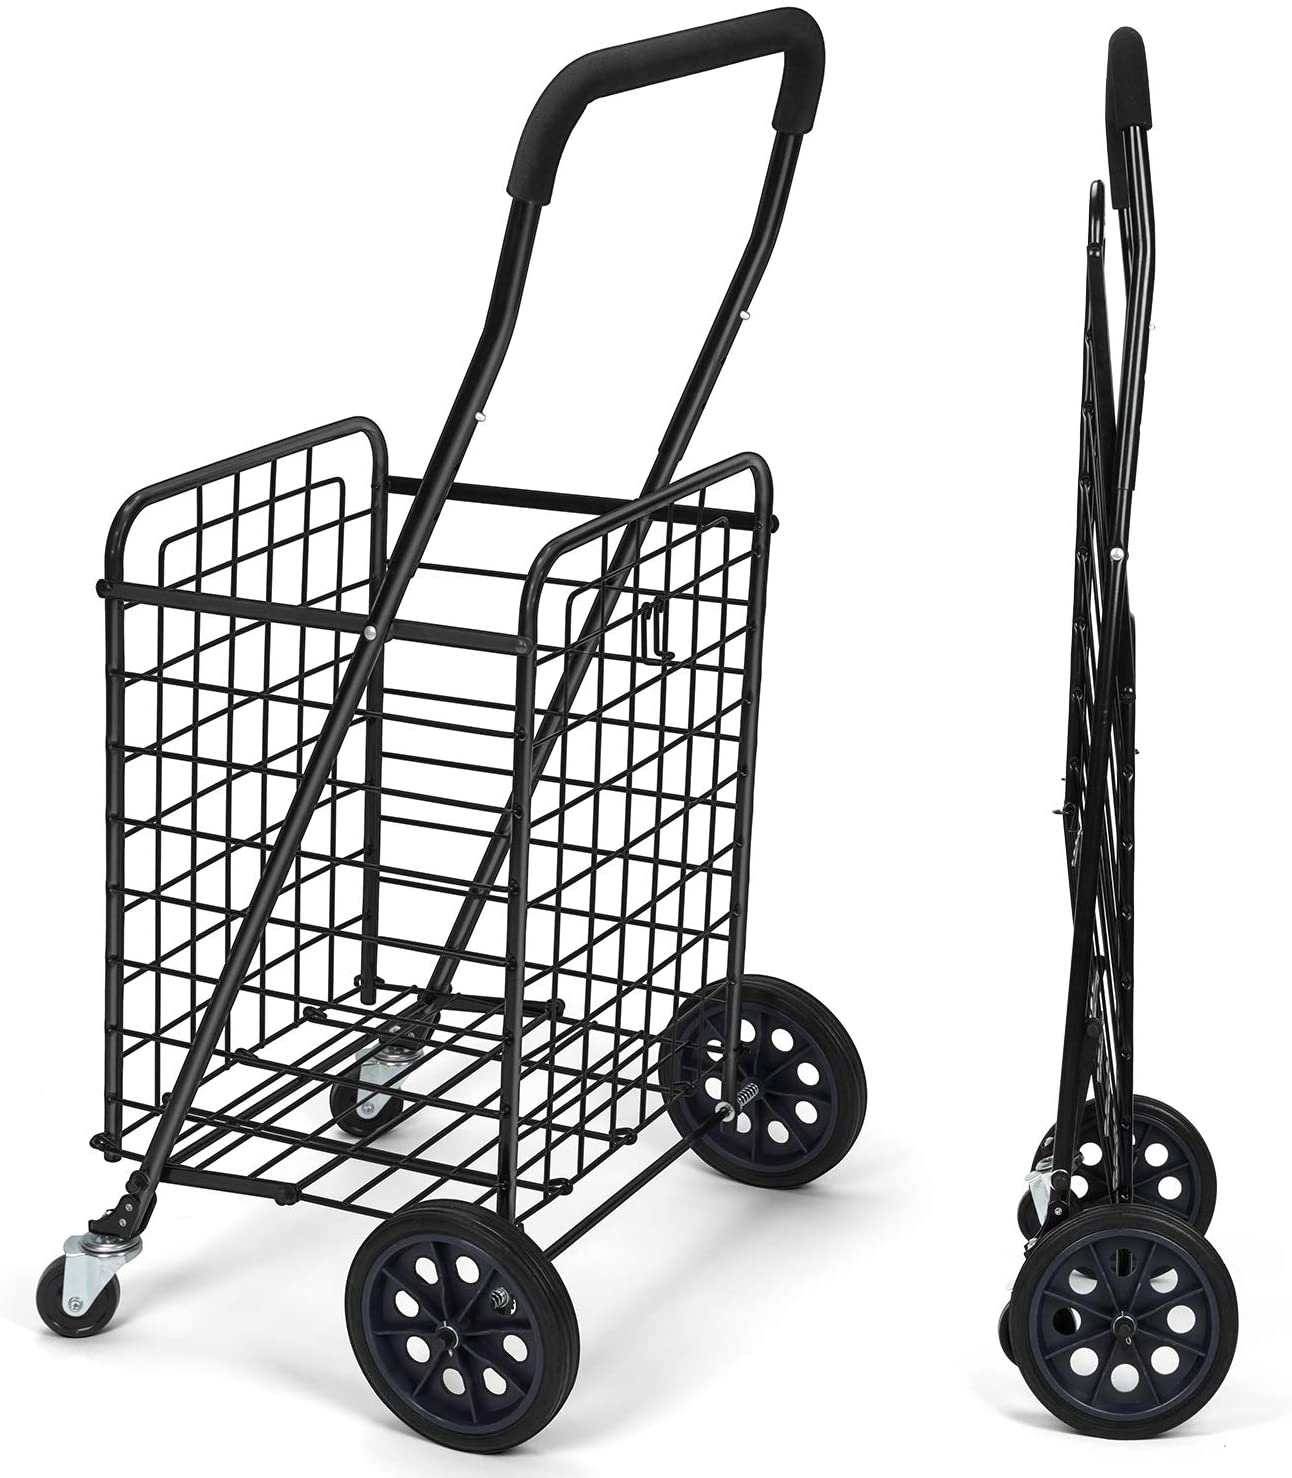 Pipishell Shopping Cart with Dual Swivel Wheels for Groceries -